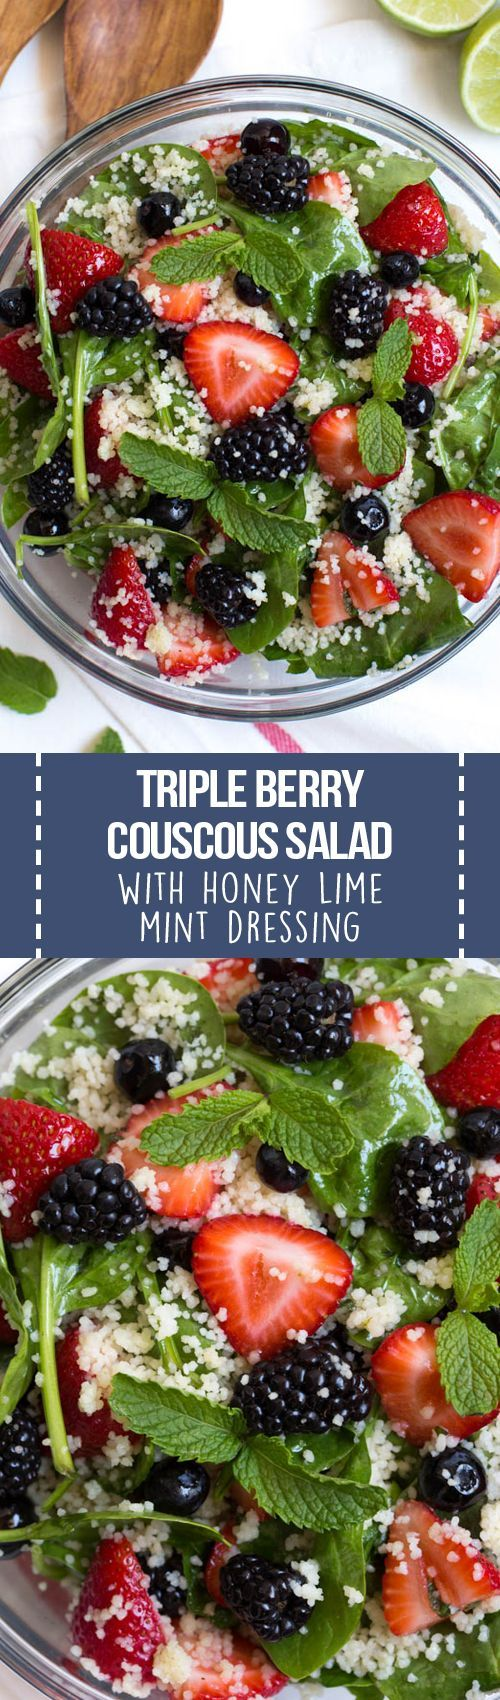 Triple Berry Couscous Salad with Honey Lime Mint Dressing combines couscous with fresh spinach, strawberries, blueberries and blackberries. Drizzle the homemade honey lime mint dressing over the salad to create a light and flavorful addition to any meal!